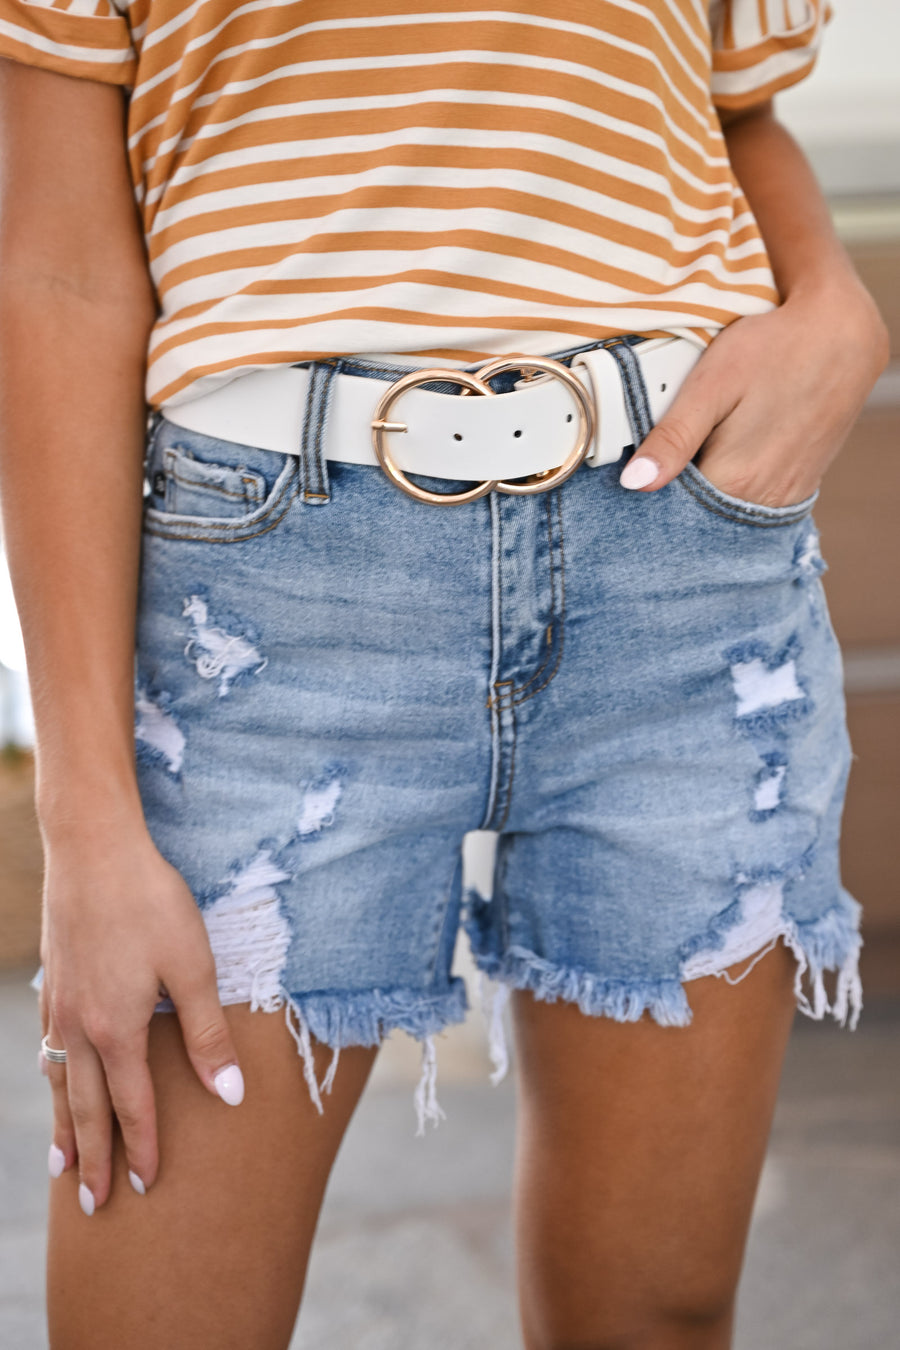 Double Trouble Belt - White & Gold womens trendy thick double circle belt closet candy